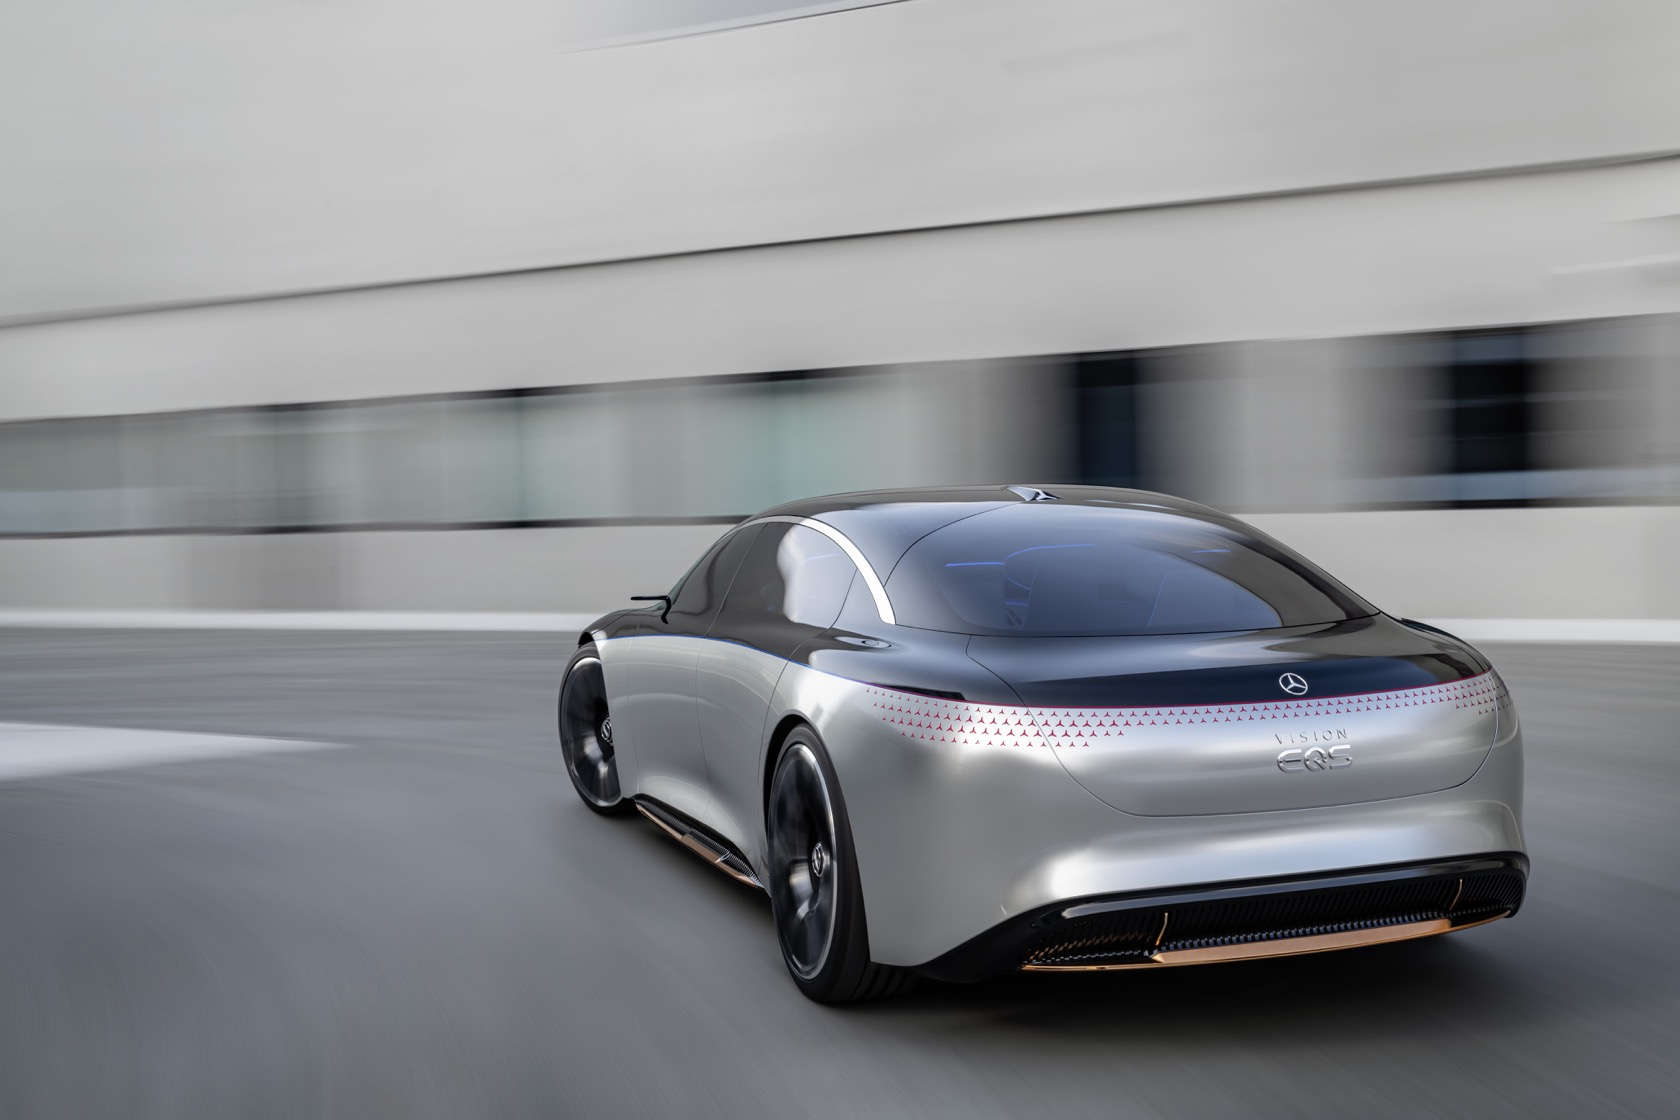 Mercedes-Benz VISION EQS is an unexpectedly practical